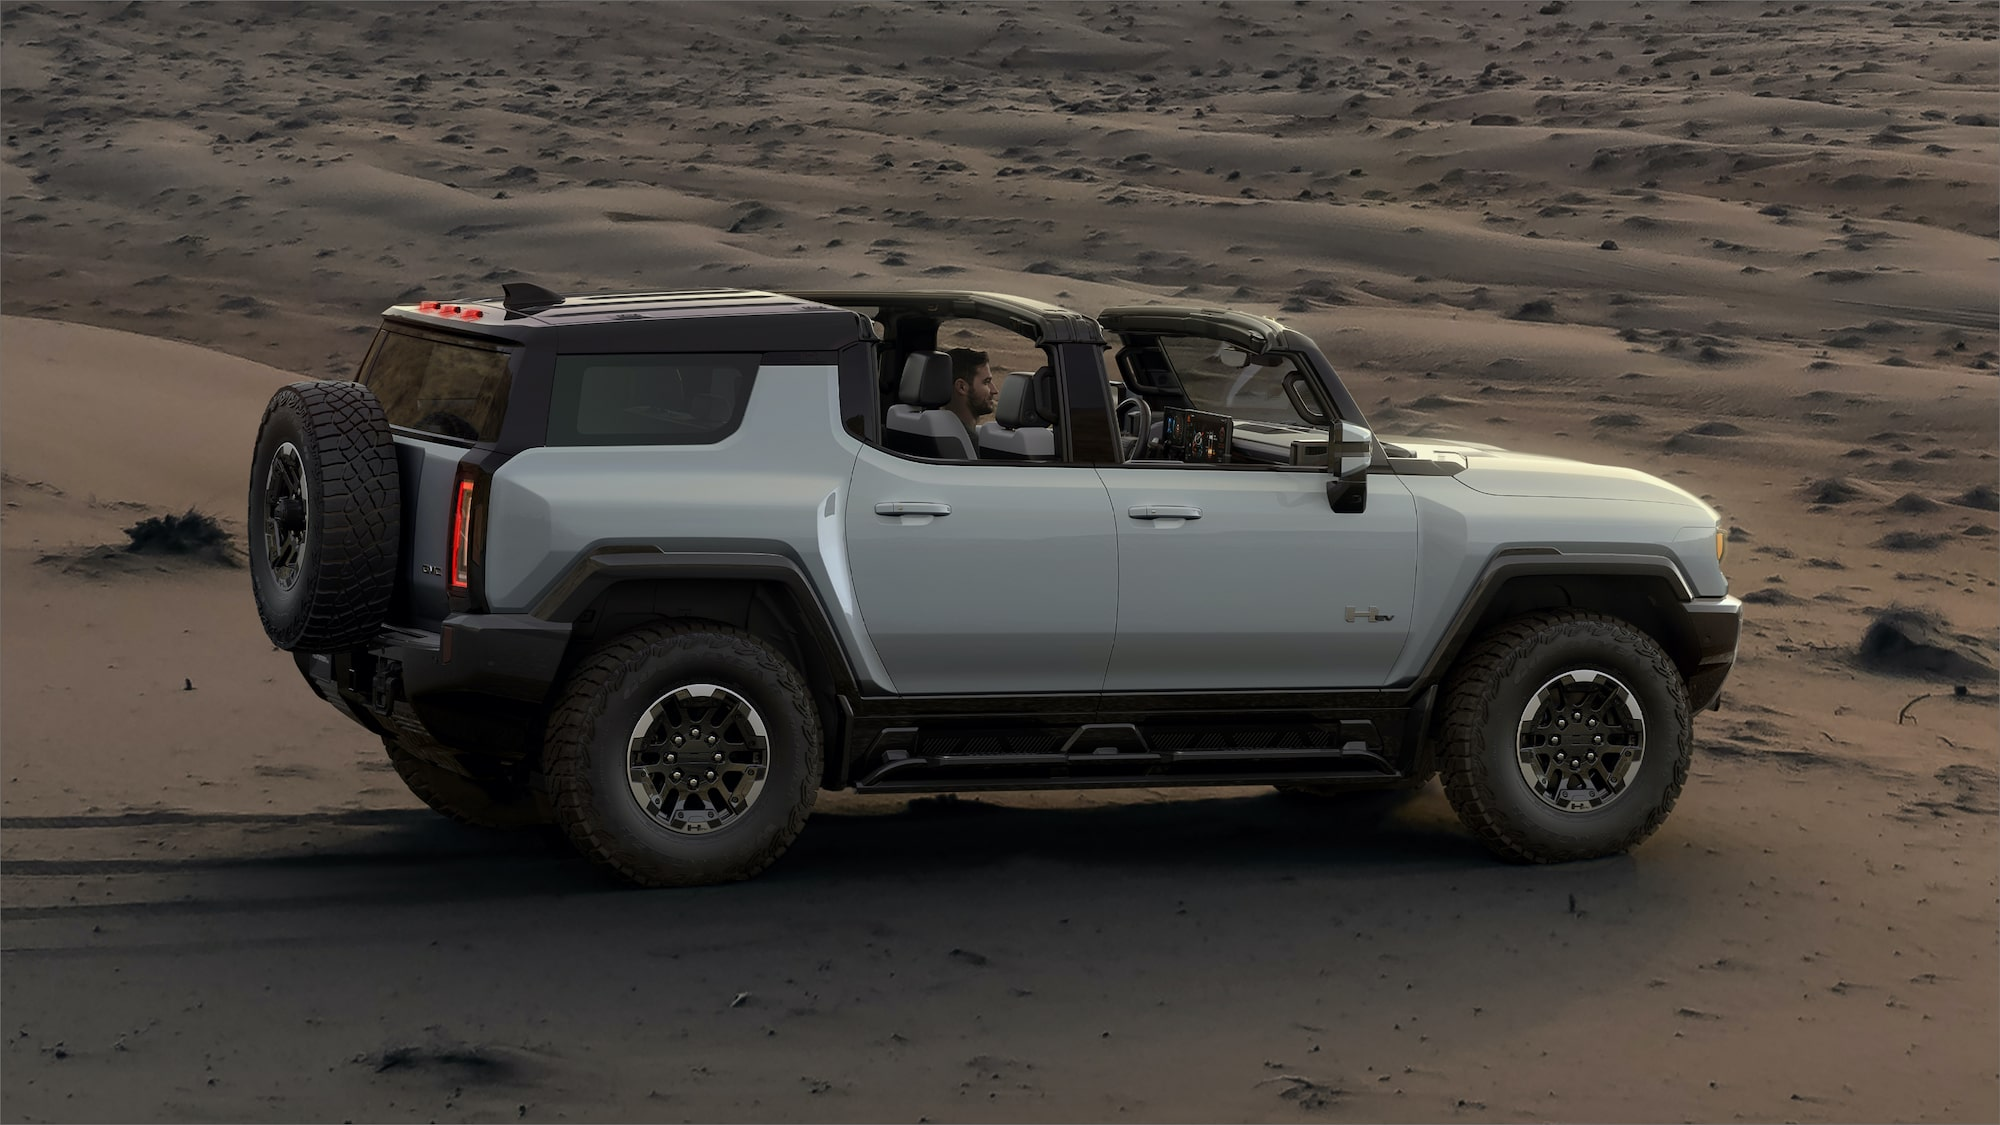 2020 GMC HUMMER EV Electric Truck infinity roof open interior view